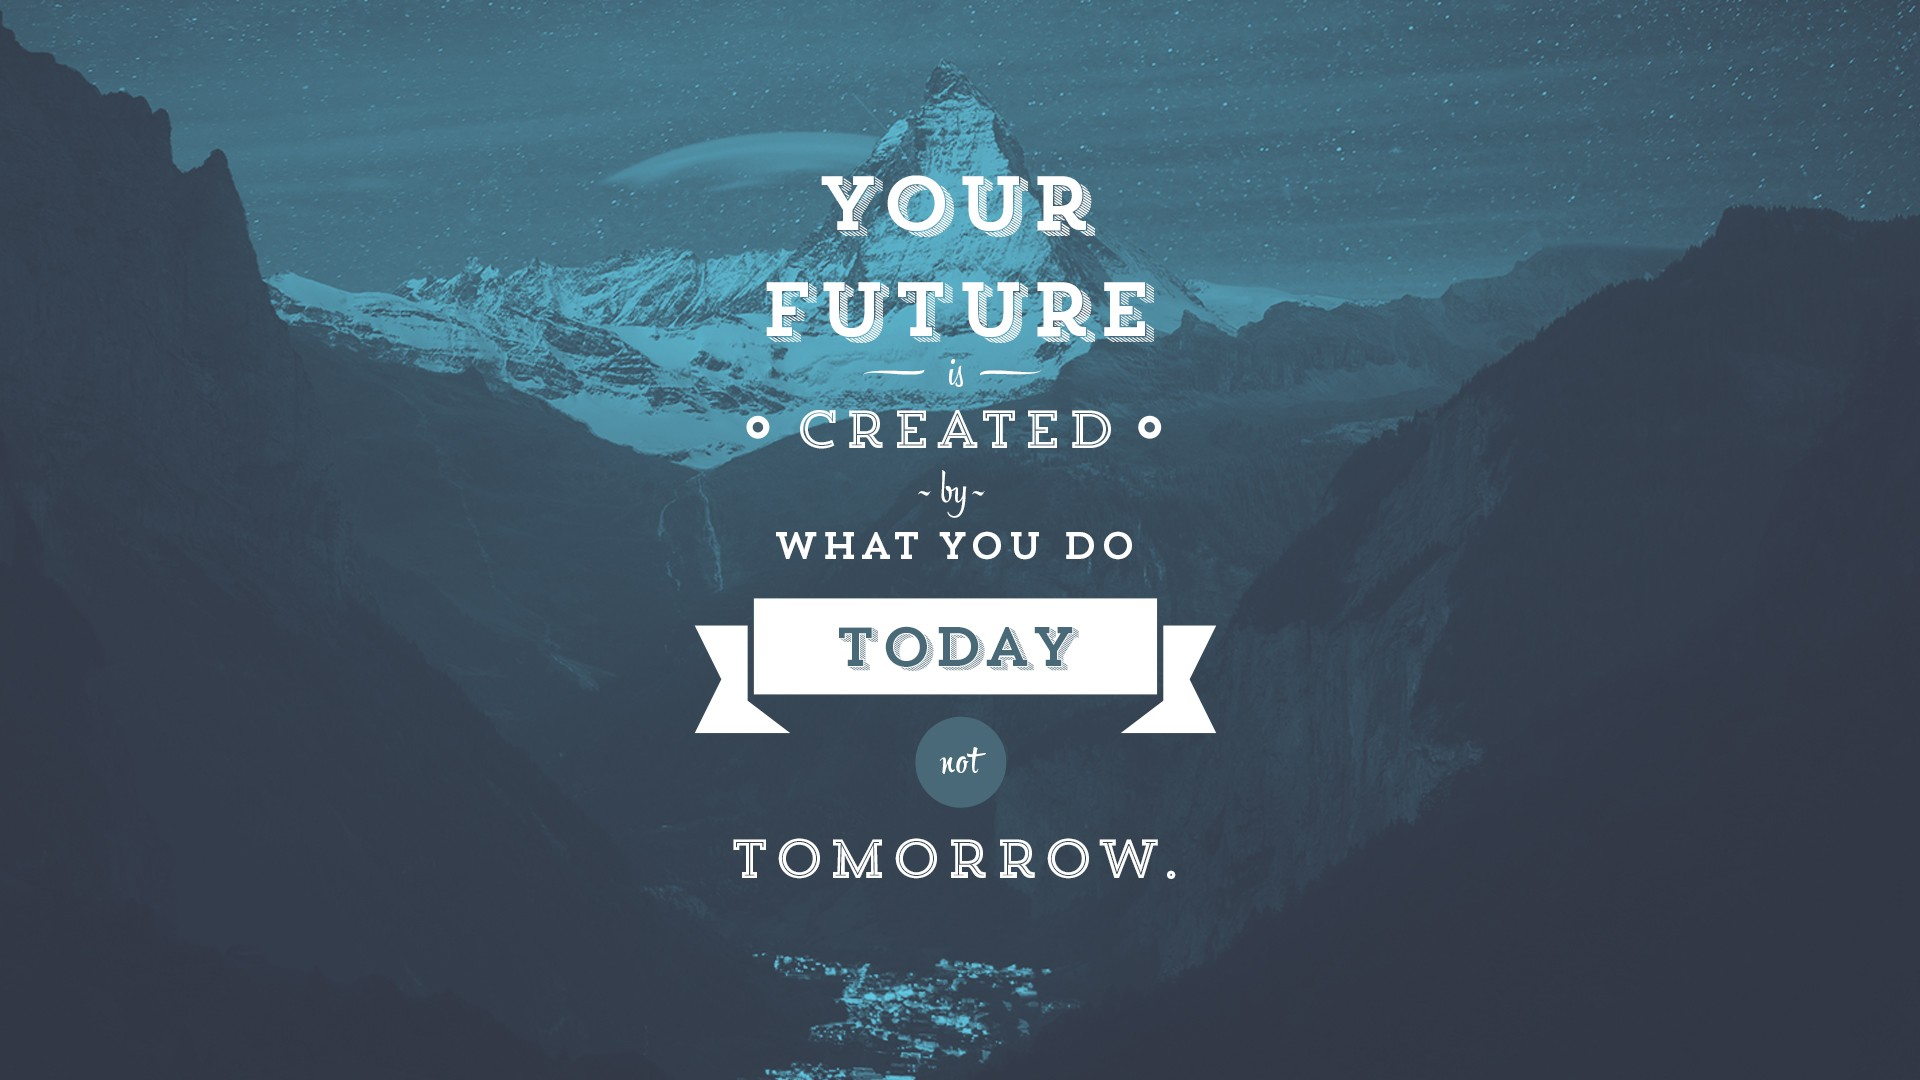 what you do today not tomorrow